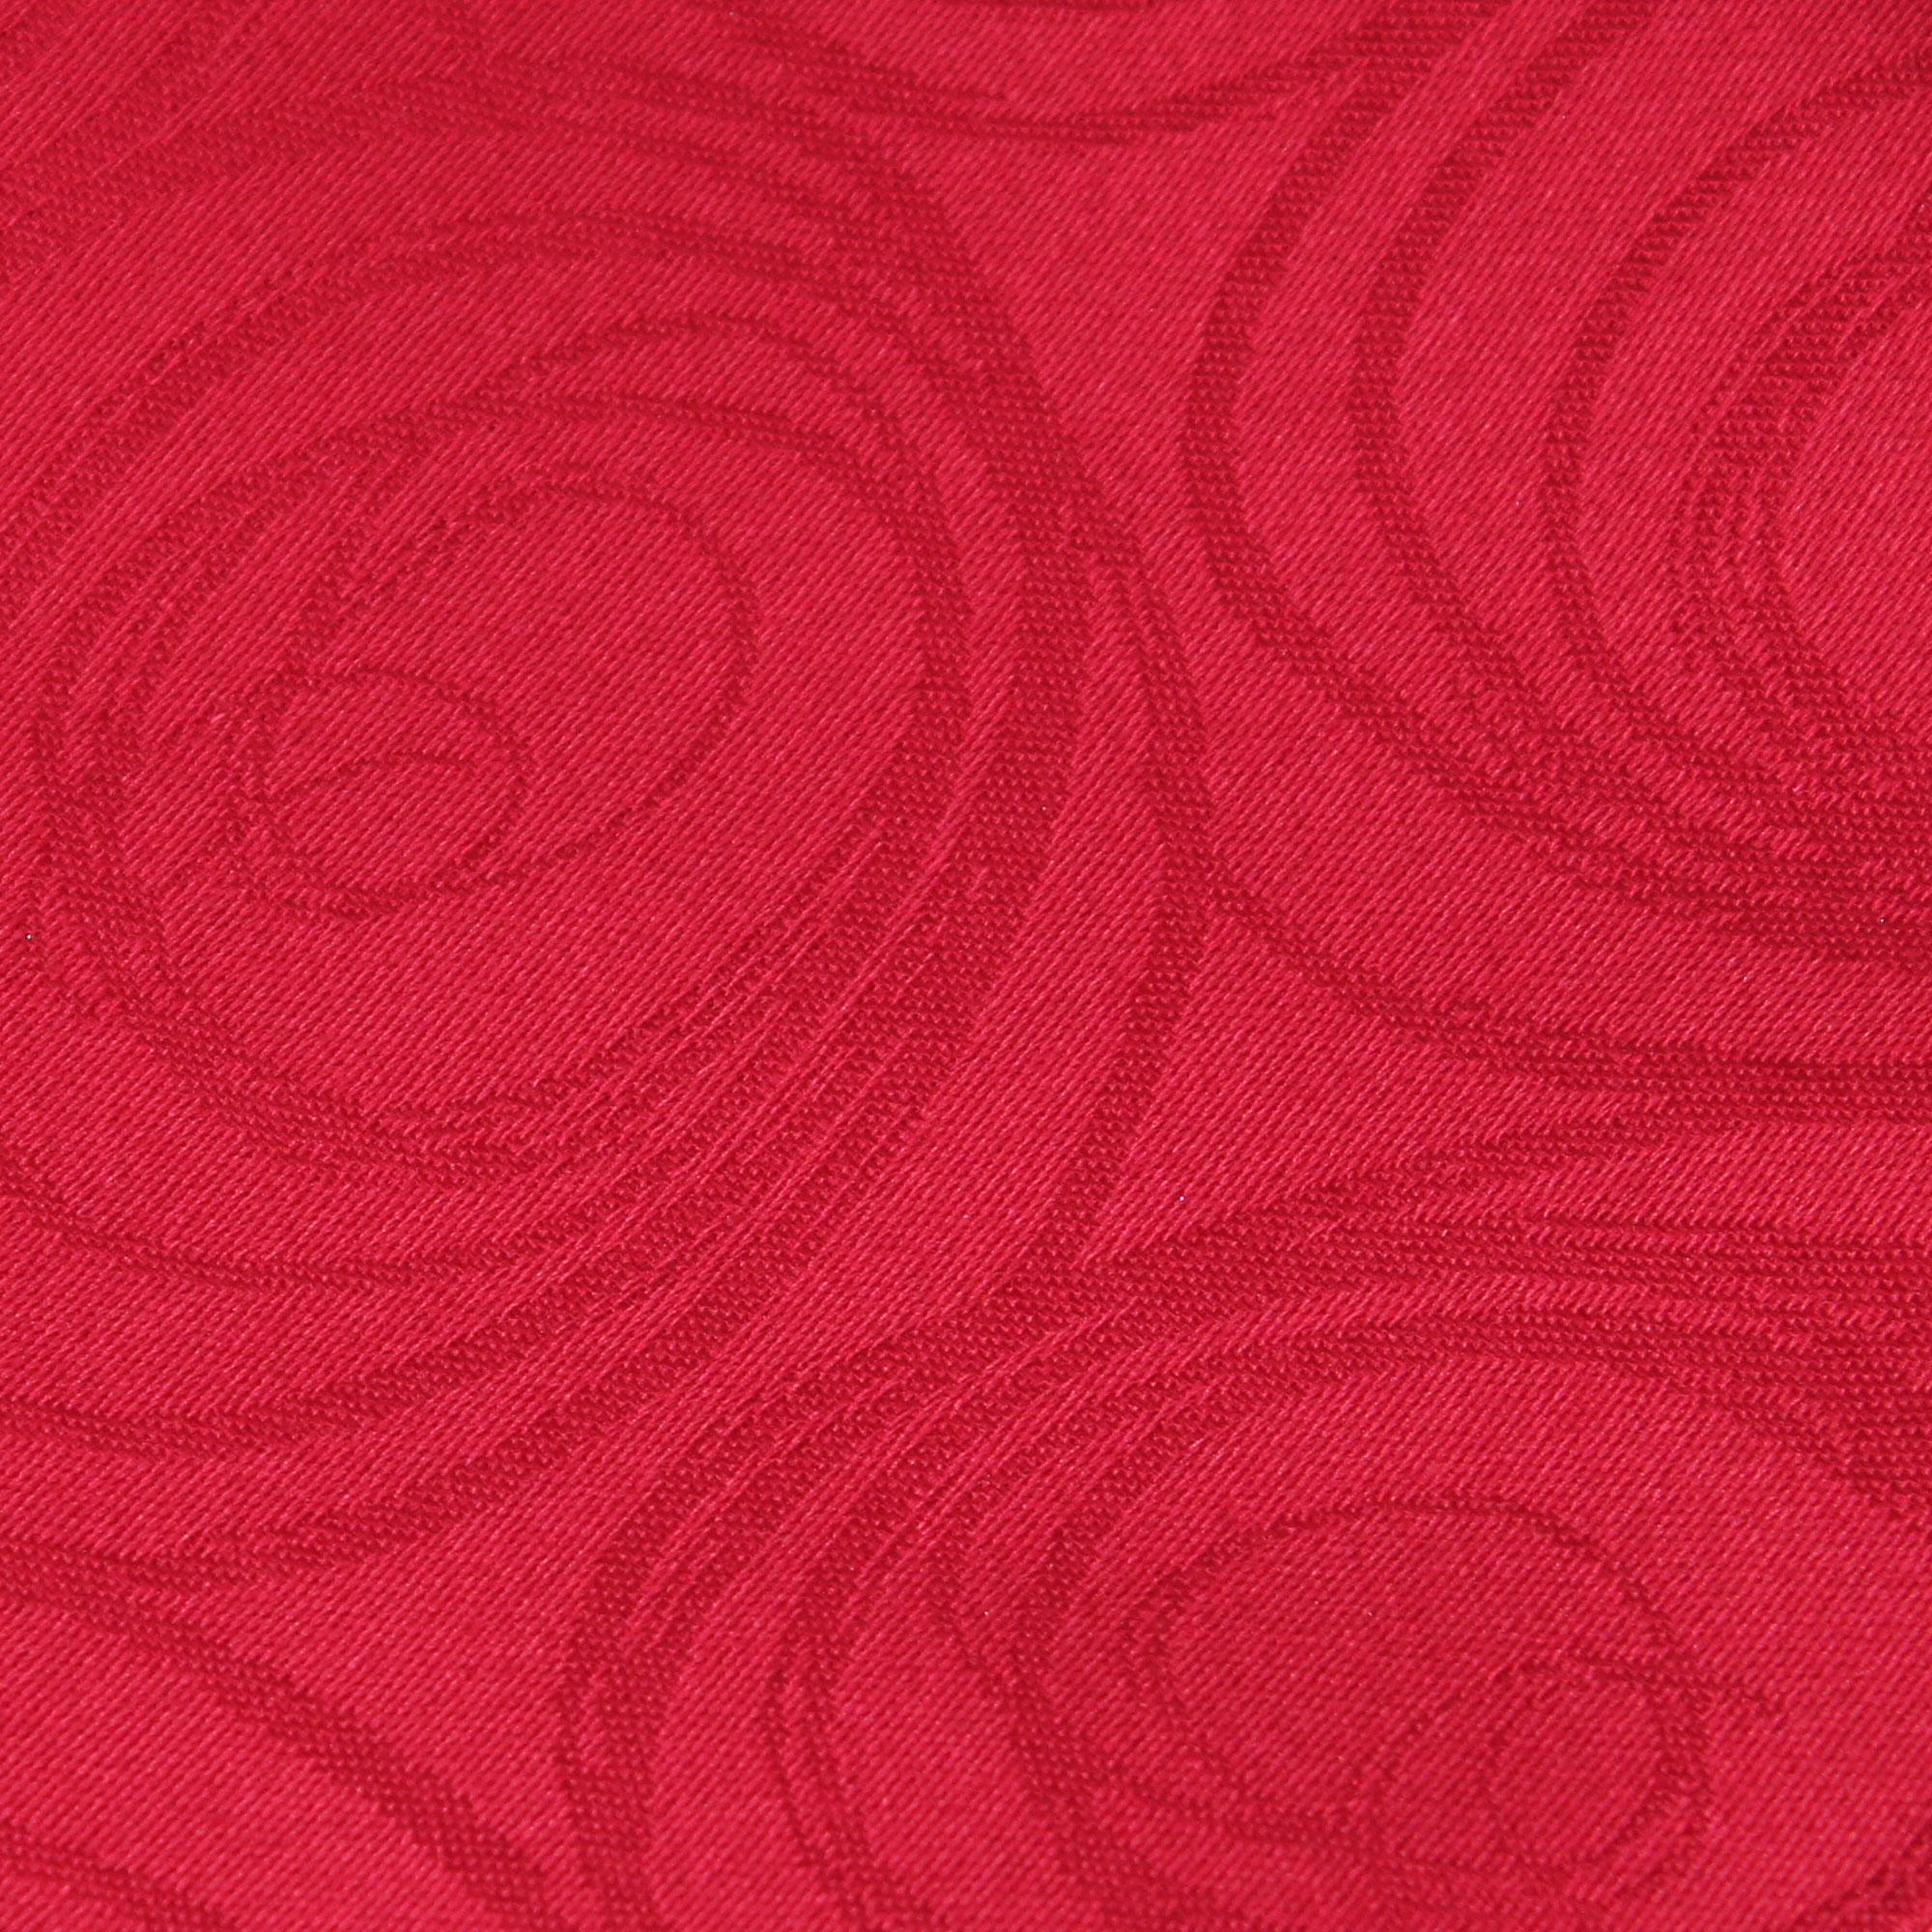 nappe ovale 180x300 cm jacquard 100 coton spirale rouge linnea vente de linge de maison. Black Bedroom Furniture Sets. Home Design Ideas